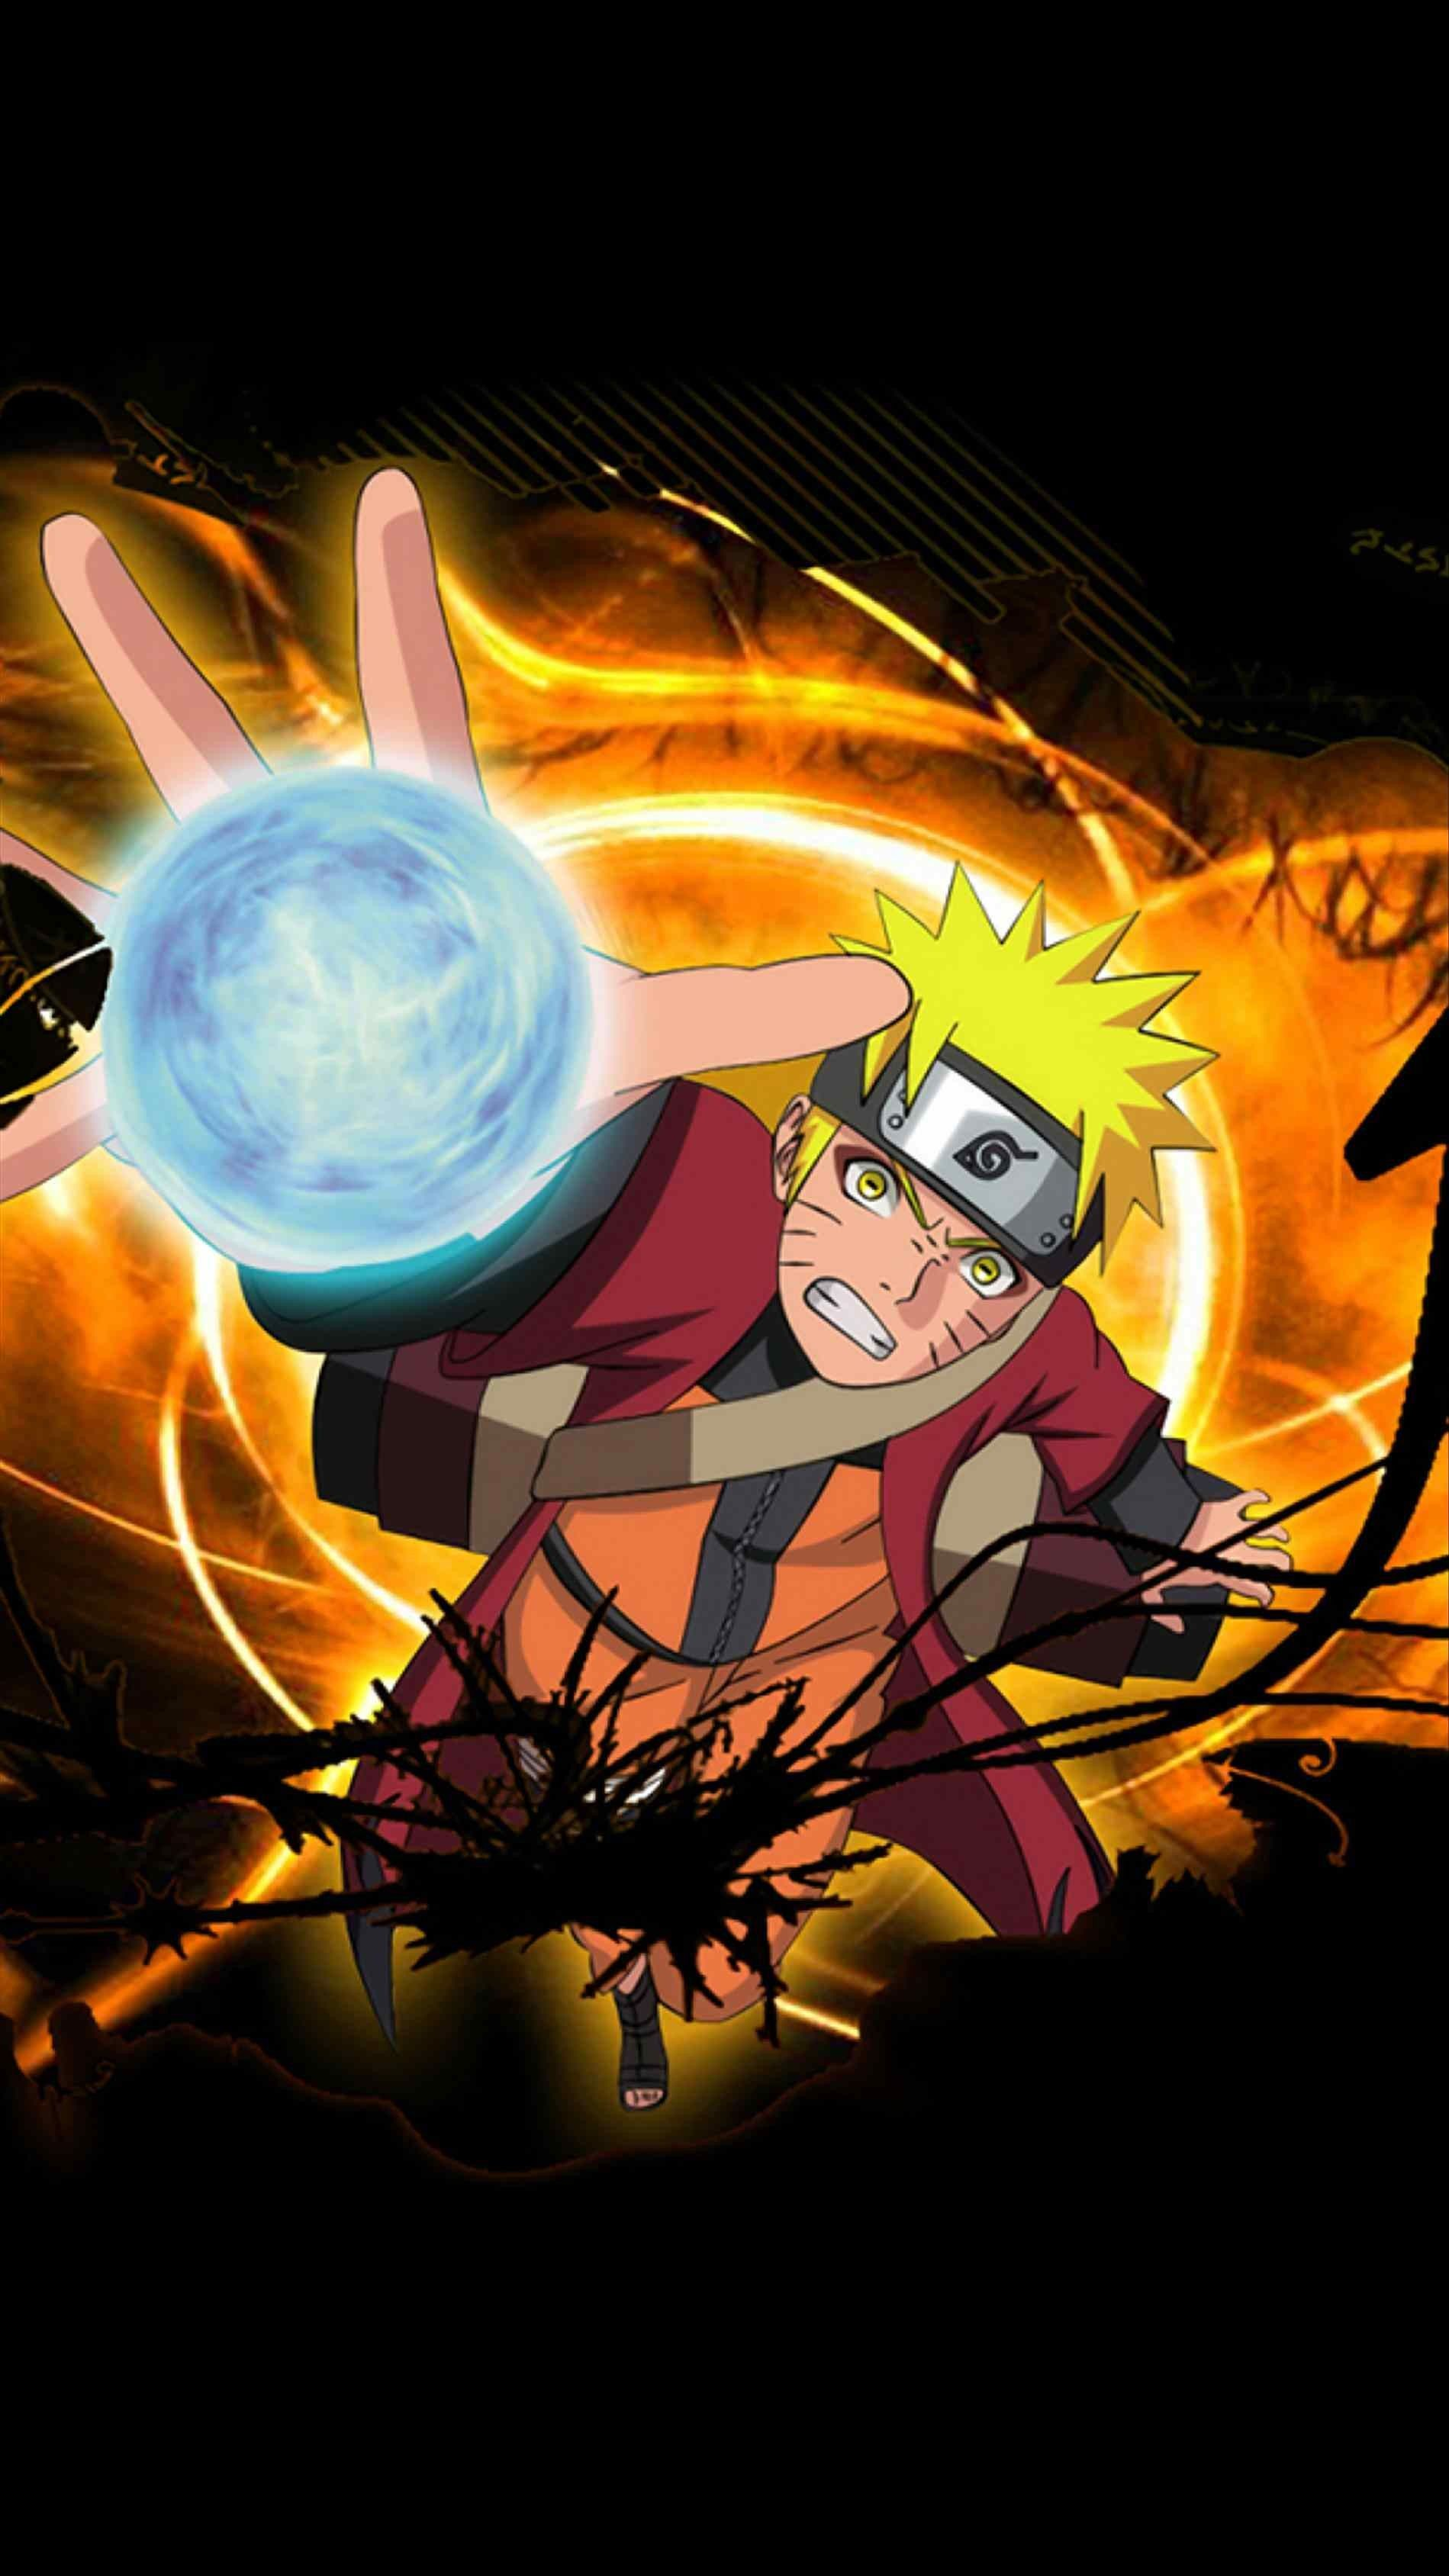 Download Wallpaper Naruto Bergerak Gif Naruto Rasengan Wallpaper 52 Images Cool Whit In 2020 Hd Anime Wallpapers Anime Backgrounds Wallpapers Naruto Wallpaper Iphone